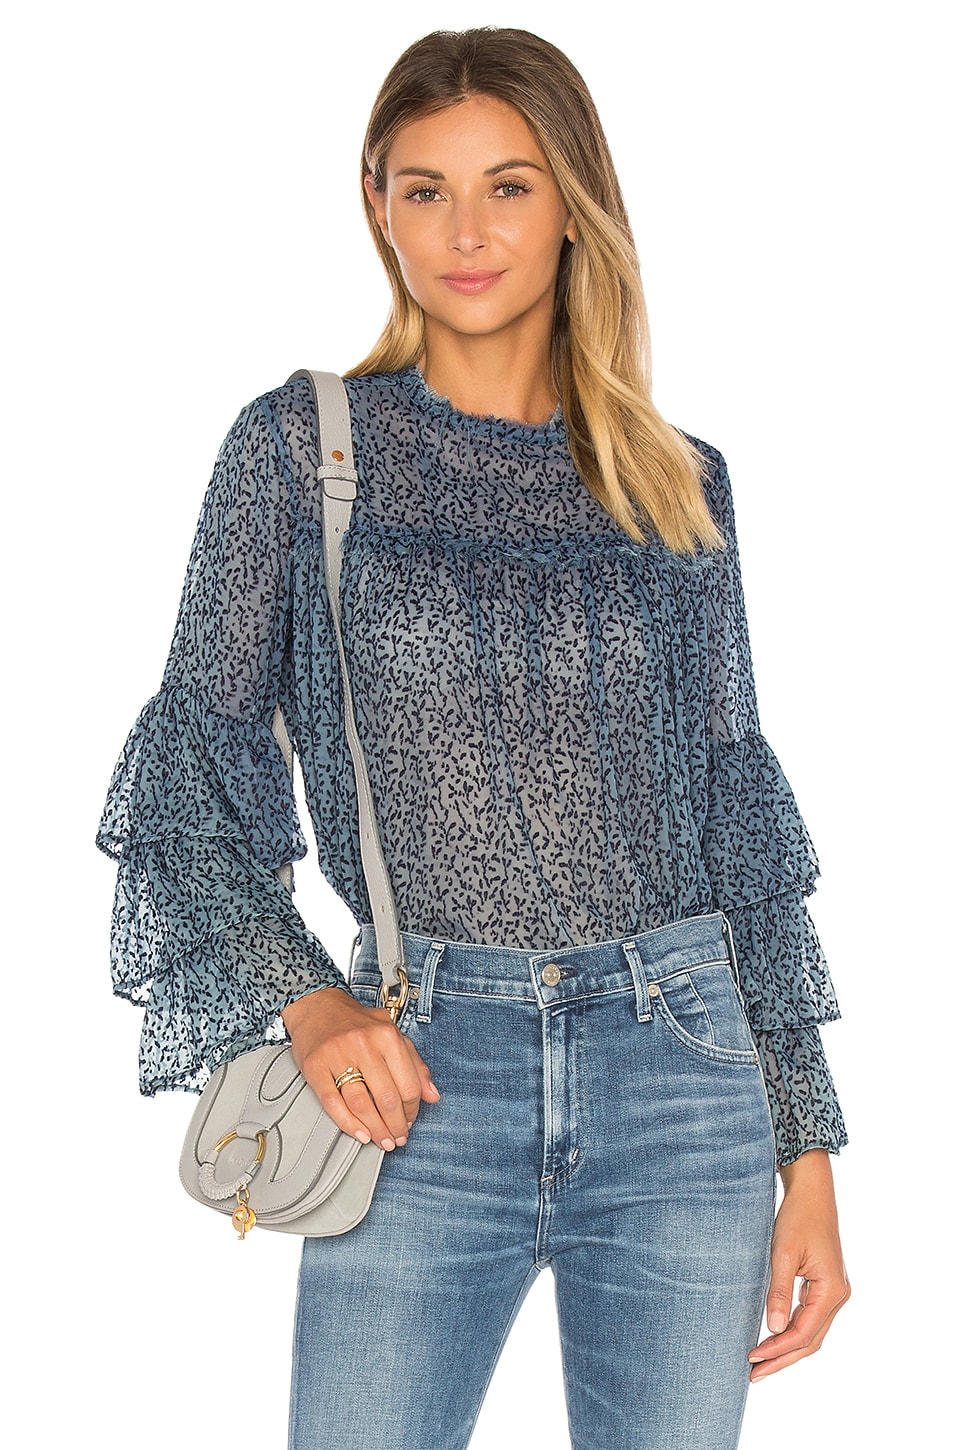 GM STUDIO The Bell Sleeve Blouse in Indigo Enzyme